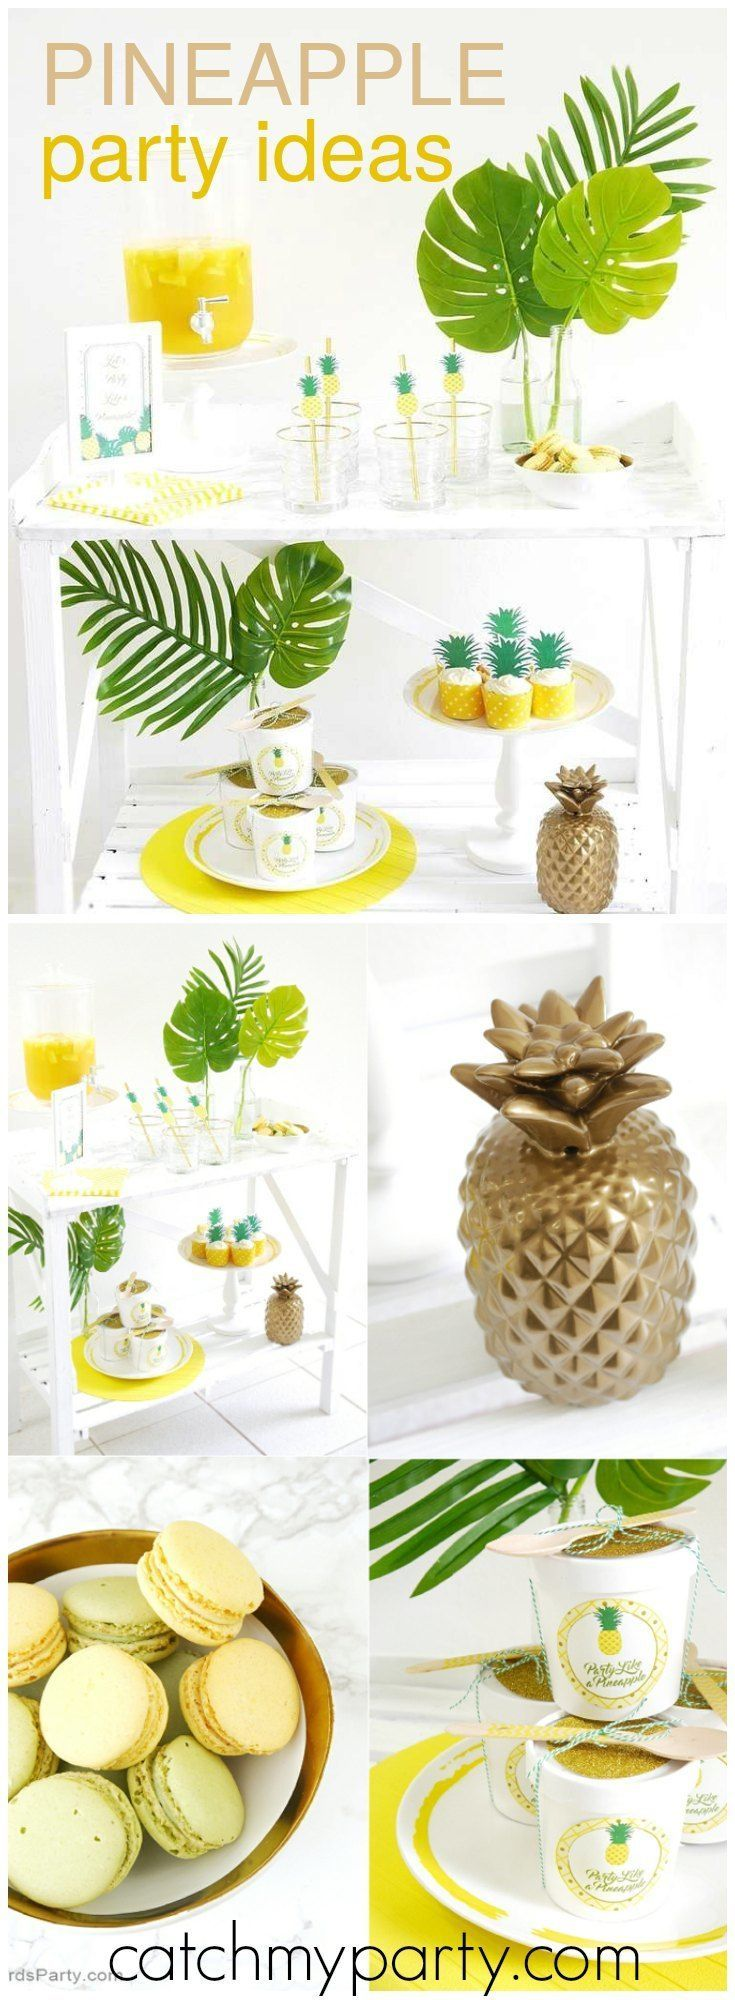 132 best Pineapple Party images on Pinterest | Birthday party ...